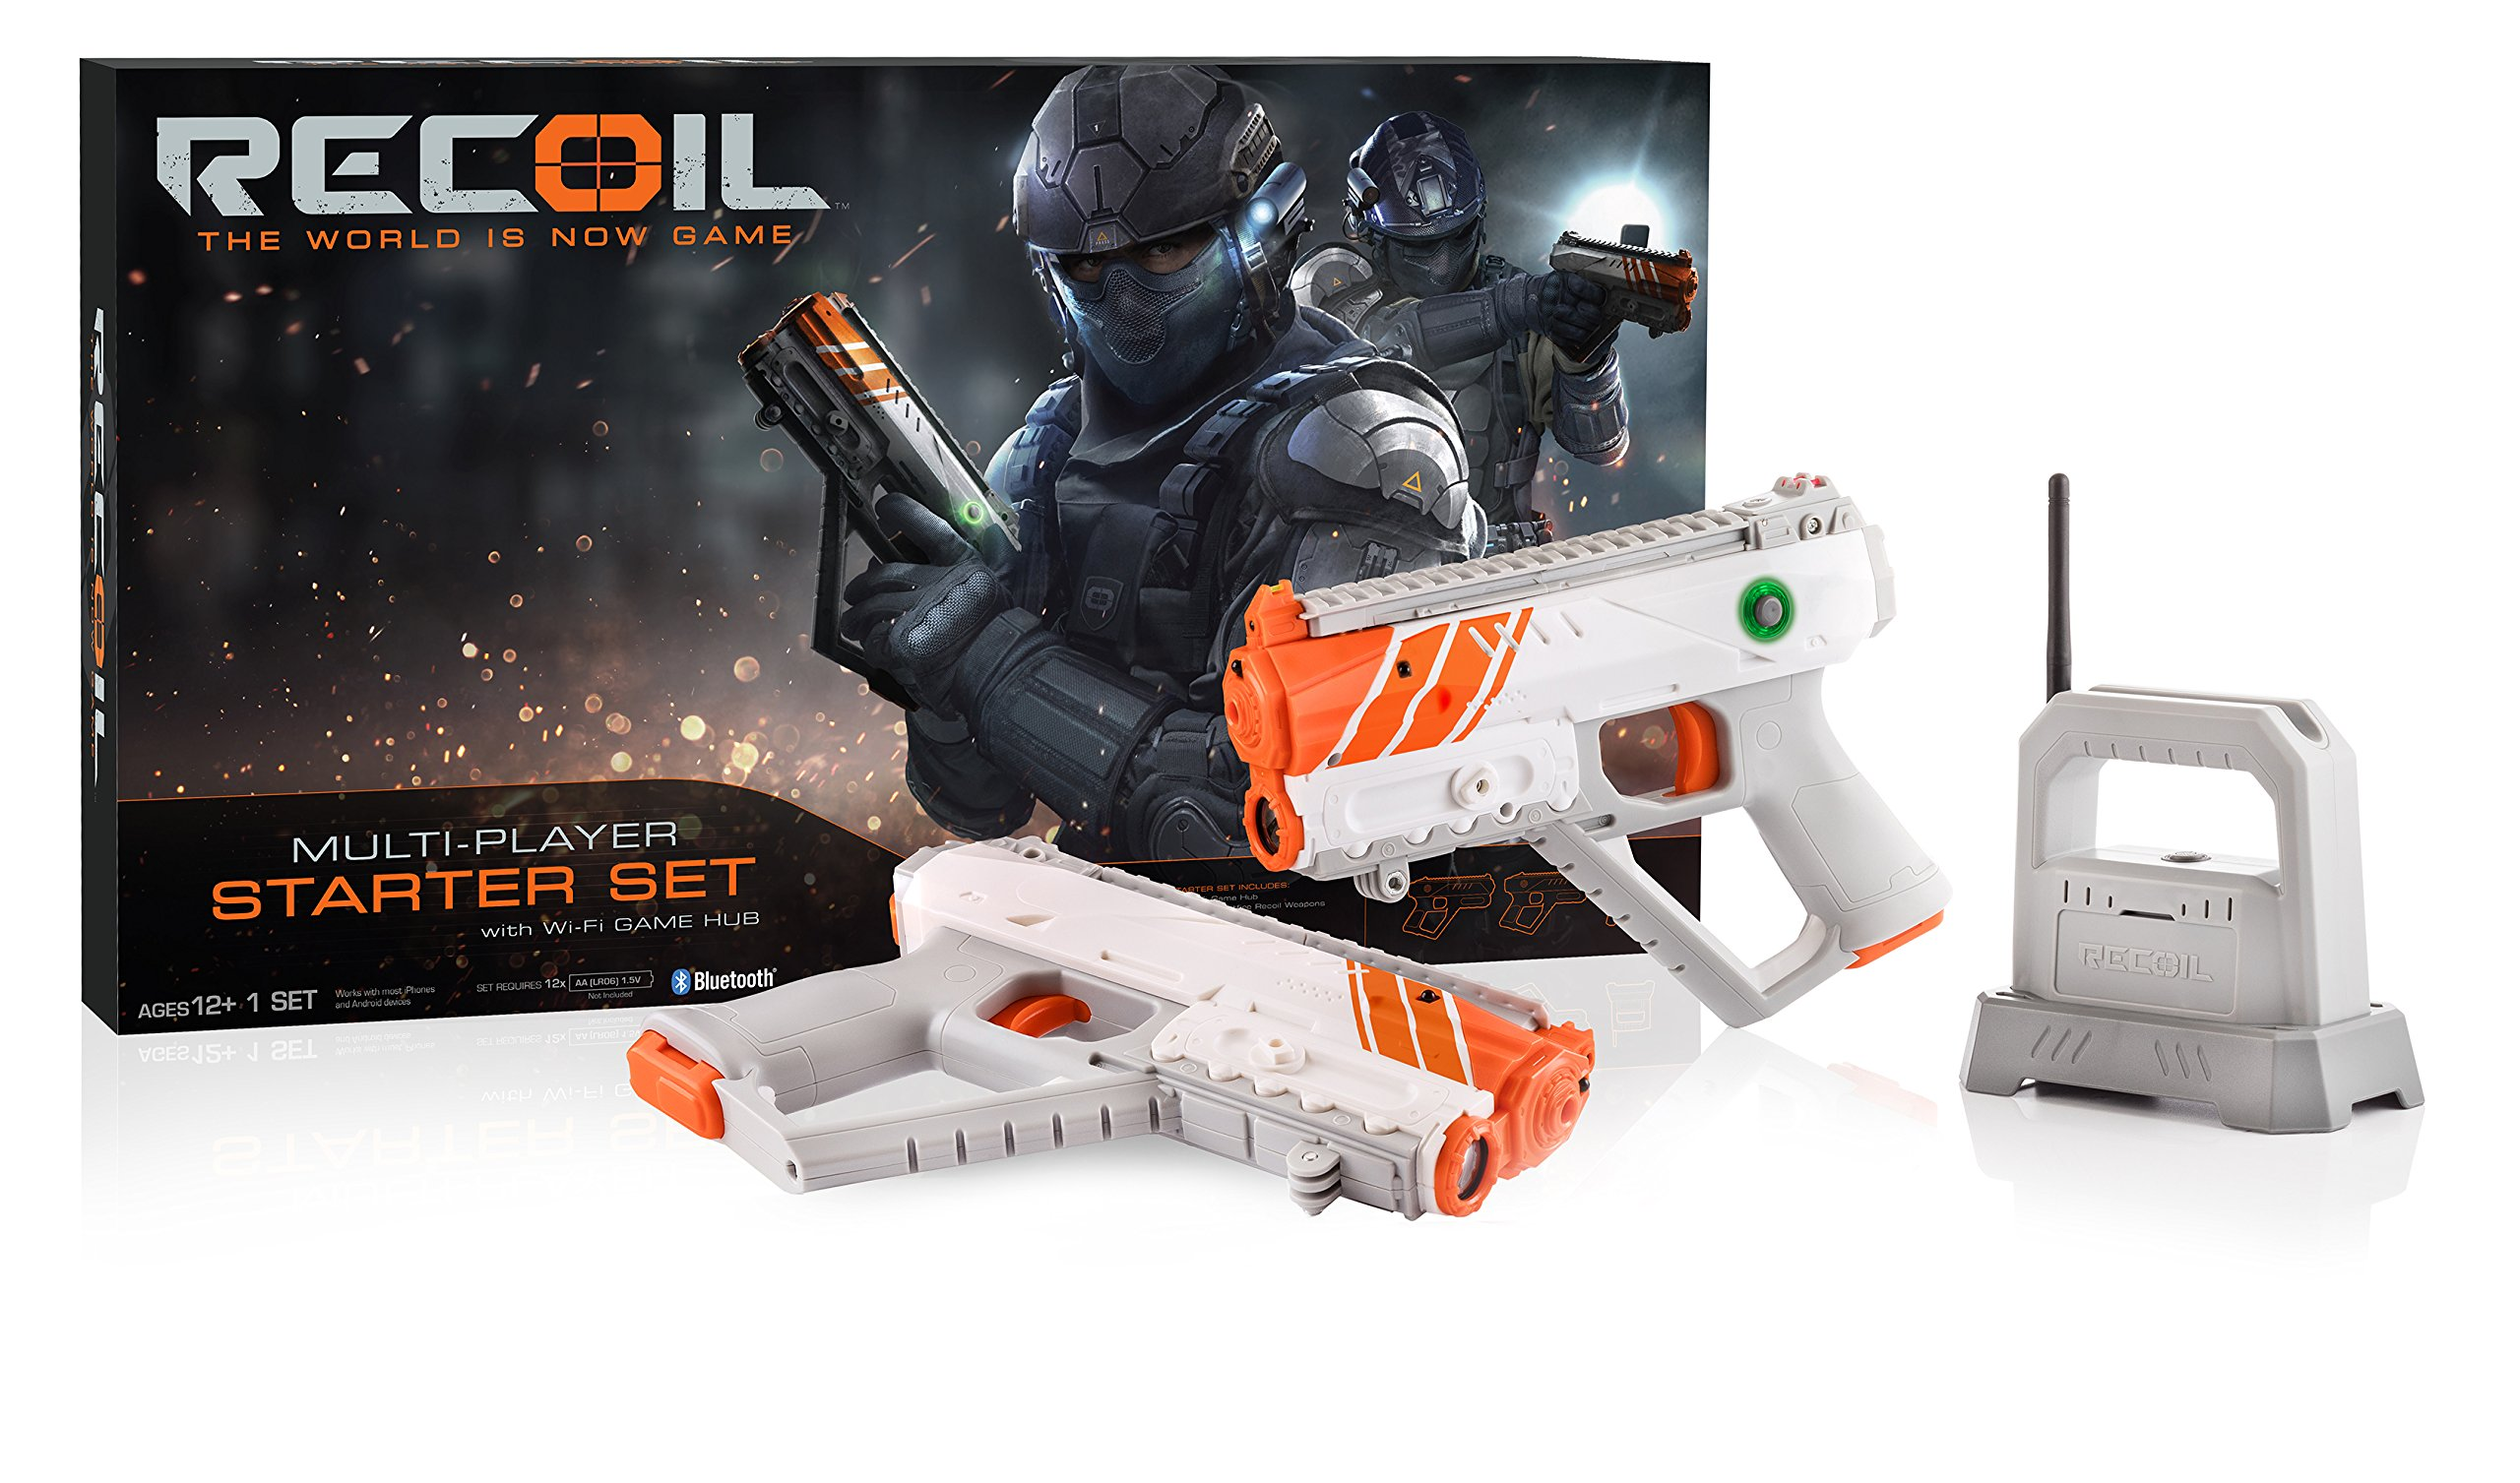 Recoil Laser Tag Starter Set, GPS enabled Multi-Player Smartphone Game by Recoil (Image #3)